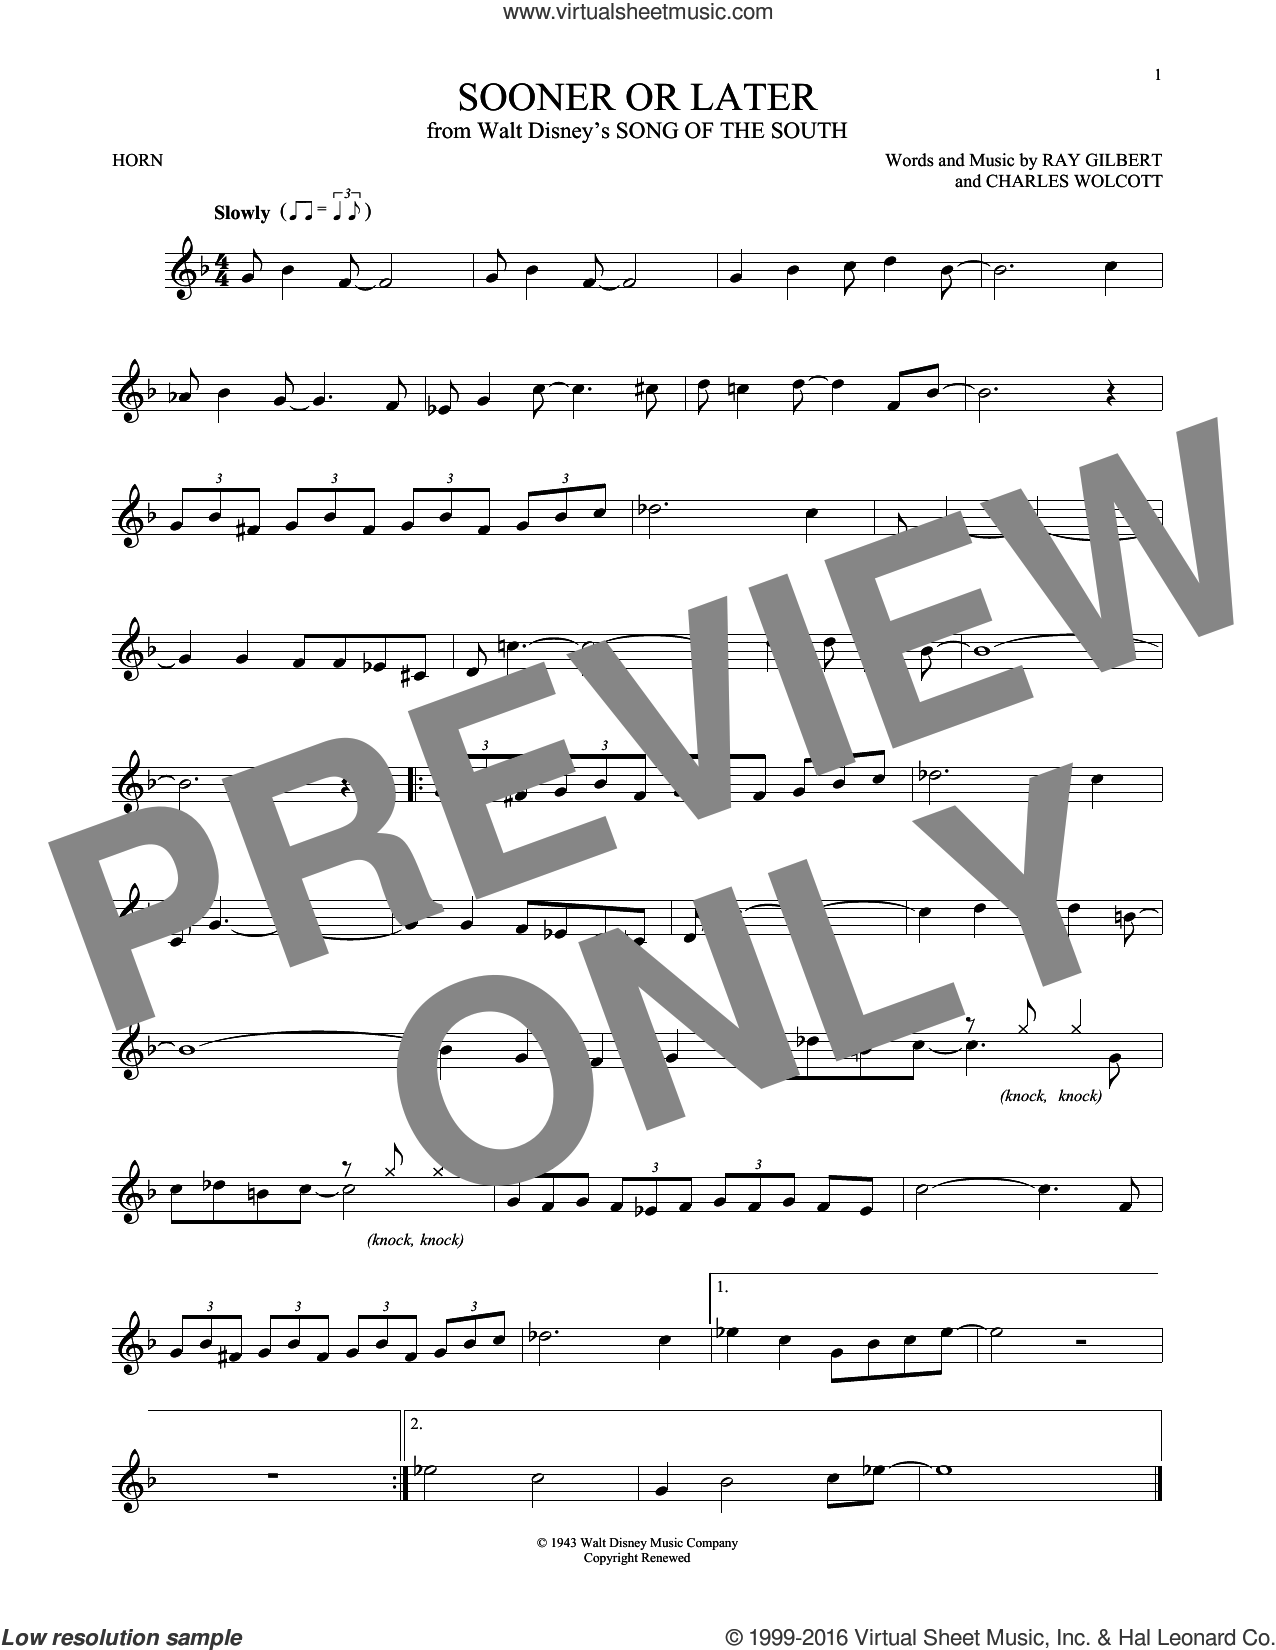 Sooner Or Later sheet music for horn solo by Ray Gilbert, Charles Wolcott and Ray Gilbert & Charles Wolcott, intermediate skill level